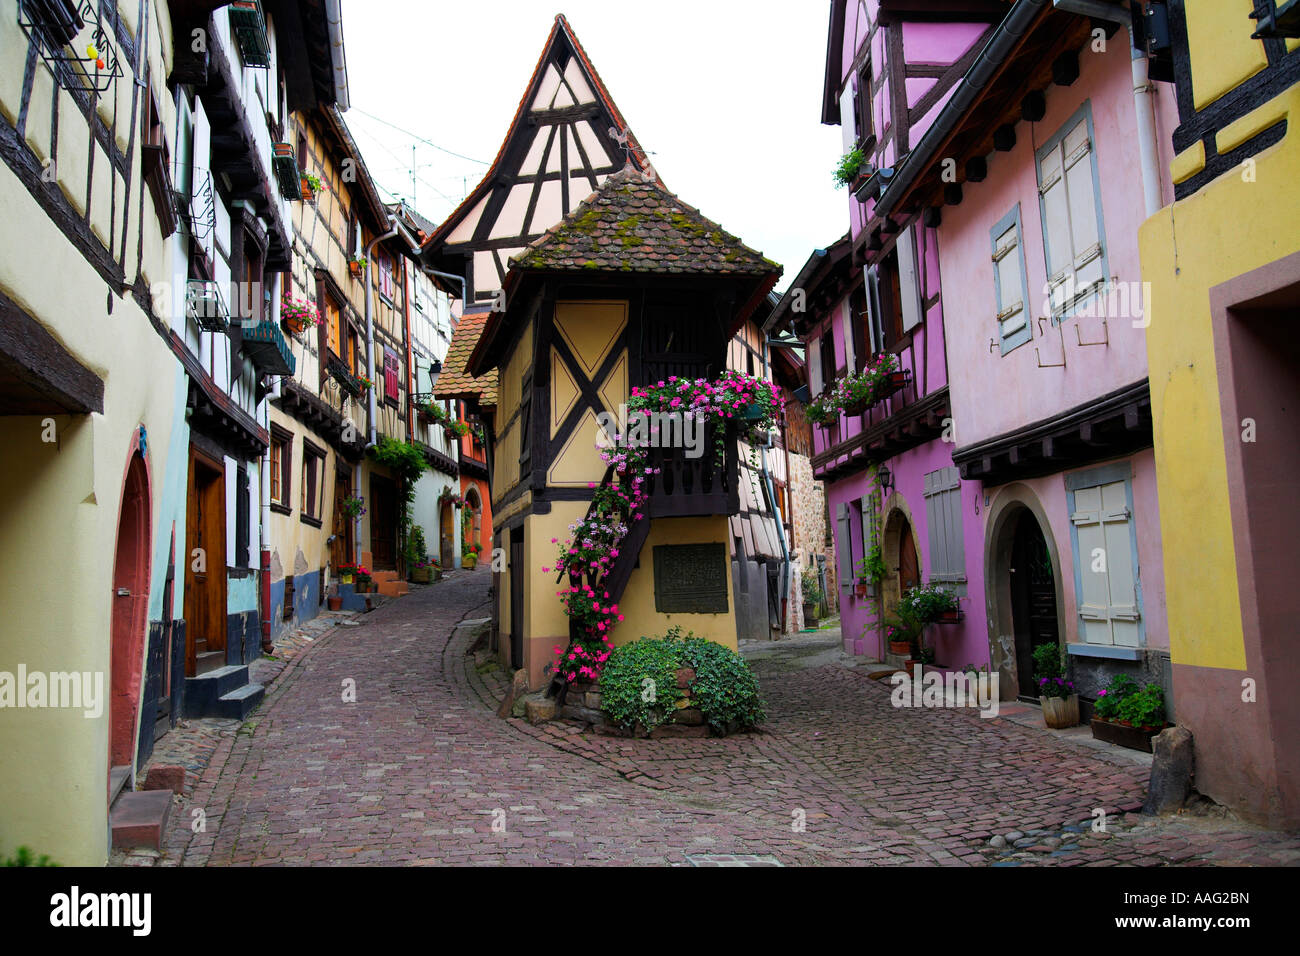 Picturesque cobbled street in Eguisheim  in the Alsace region of north eastern France, Europe Stock Photo